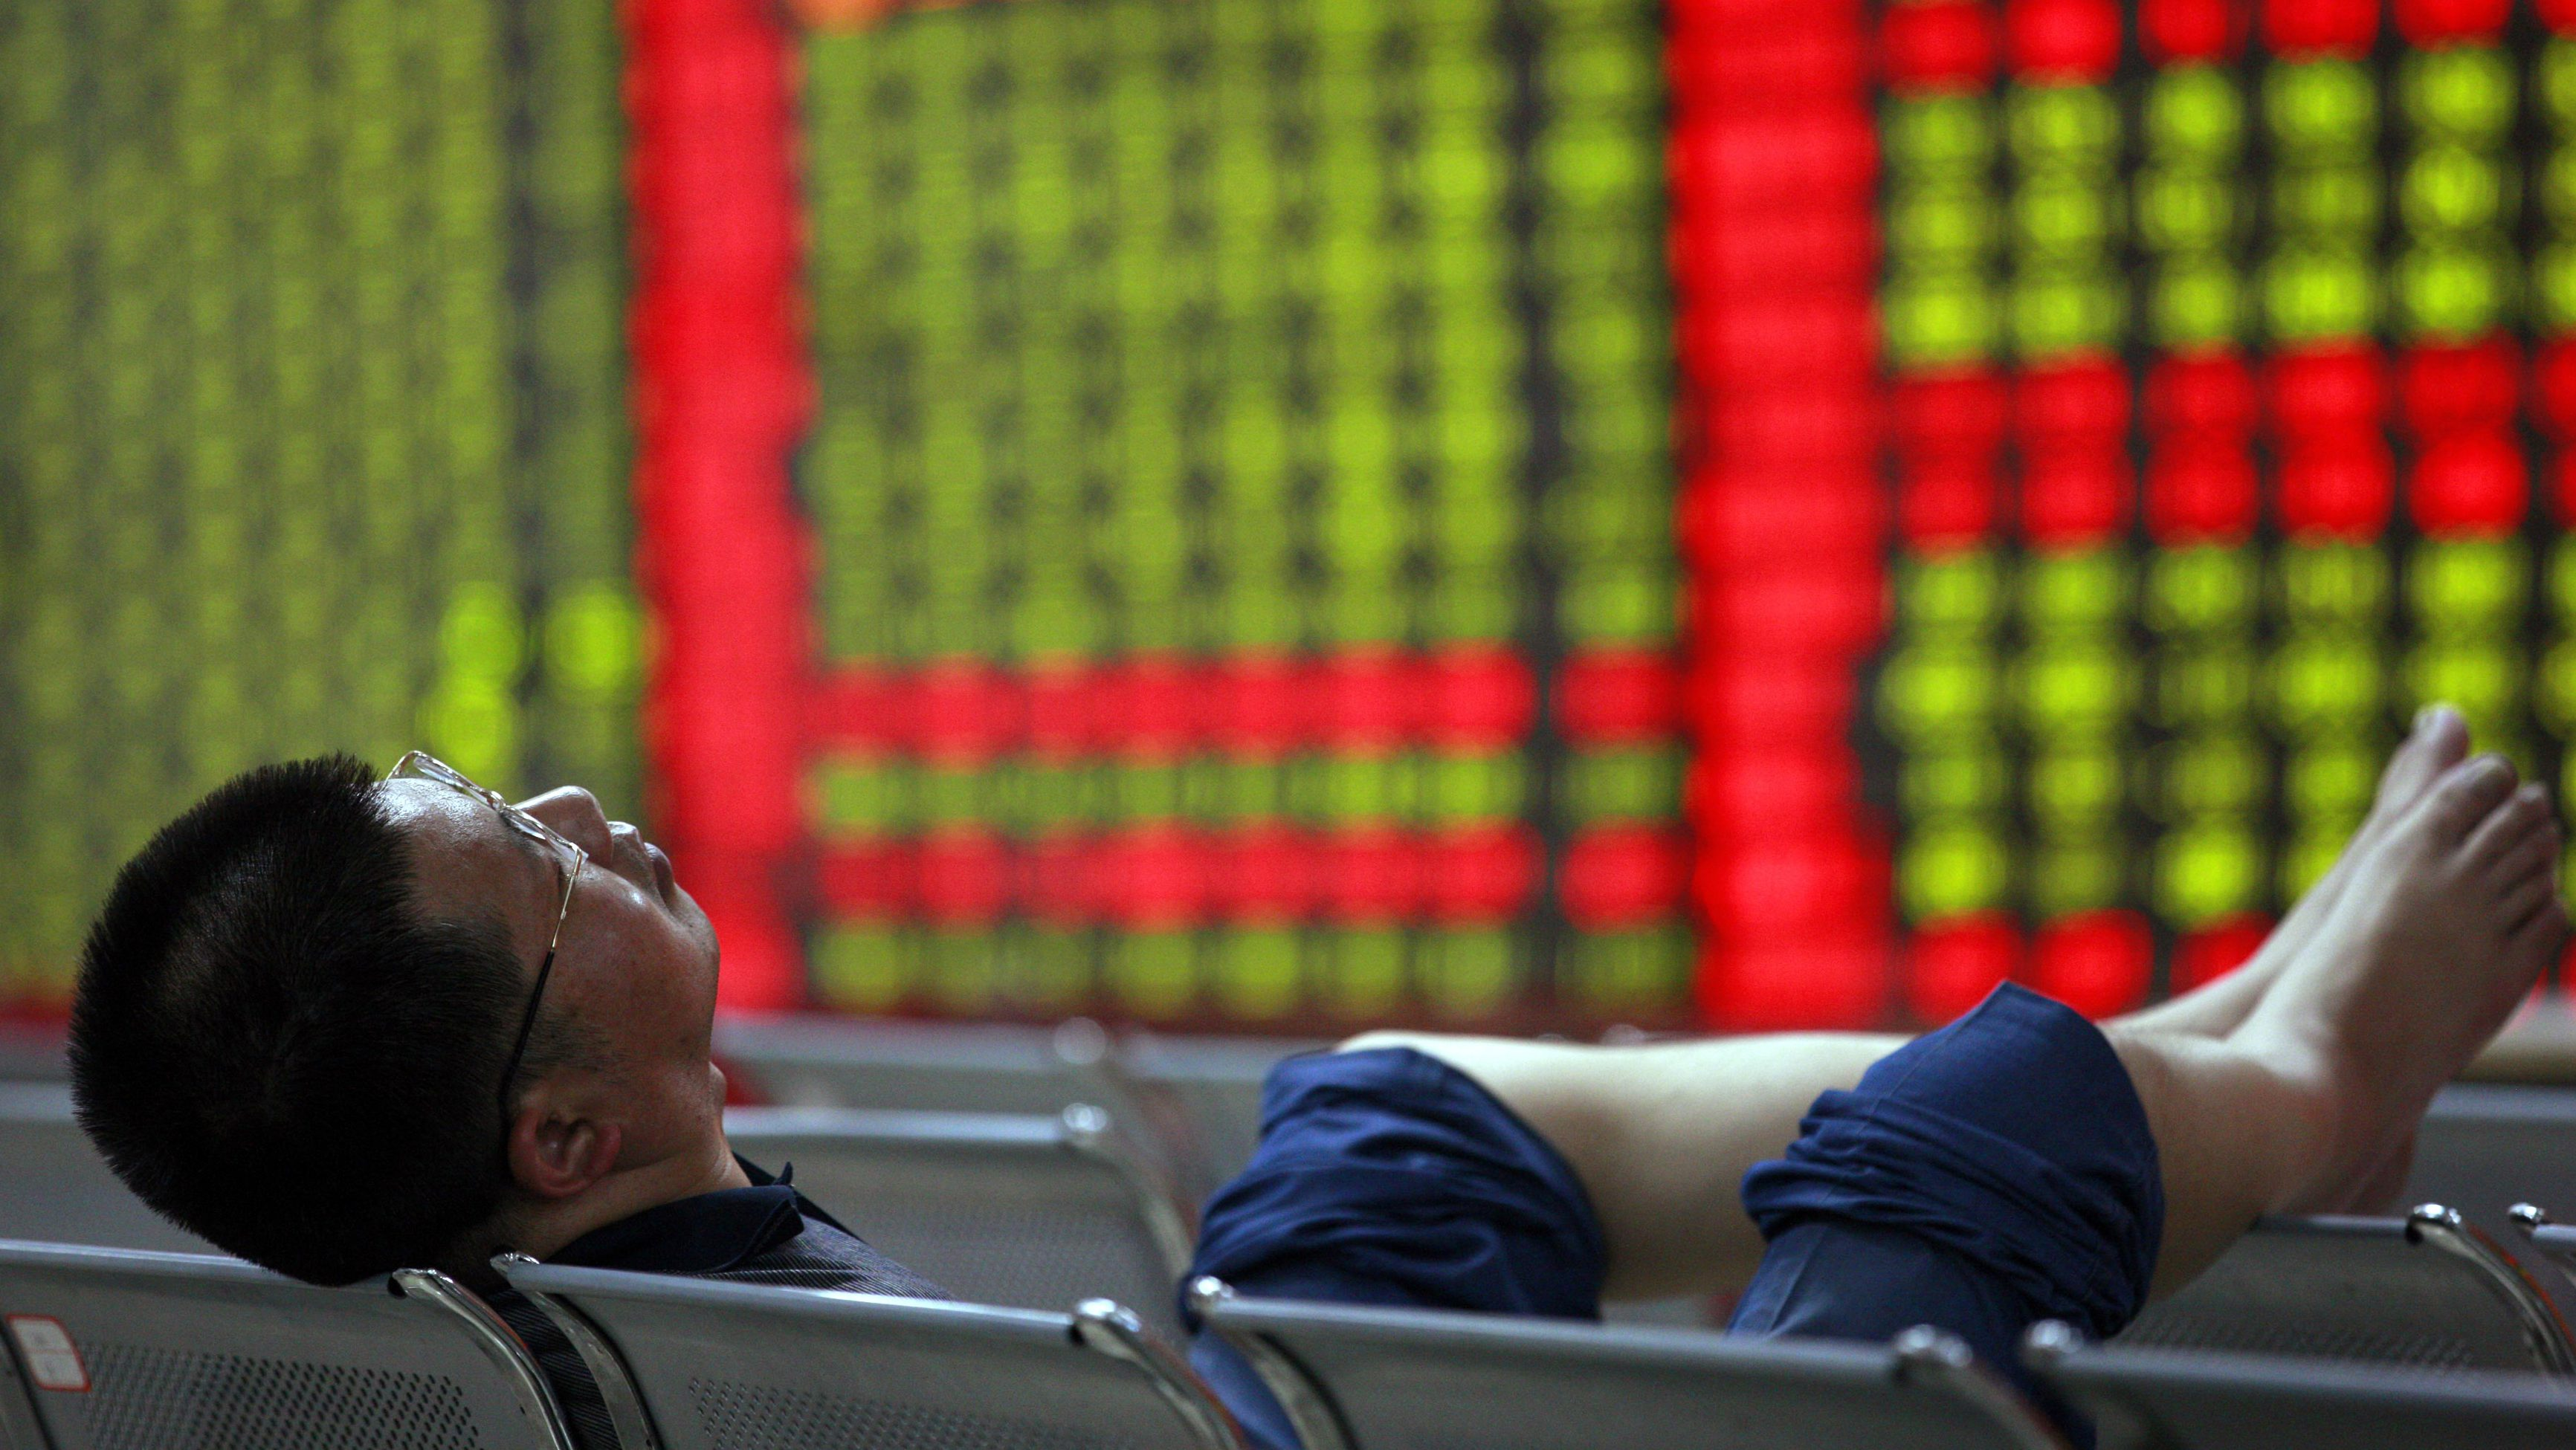 An investor sleeps on a bench in front of an electronic board showing stock information at a brokerage house in Huaibei, Anhui province May 9, 2012. China shares produced its worst loss in six weeks on Wednesday, hit by weakness in growth-sensitive sectors on jitters that a possible delay to the start of the country's five-yearly congress could complicate economic recovery. The green figures on screen indicate falling prices.